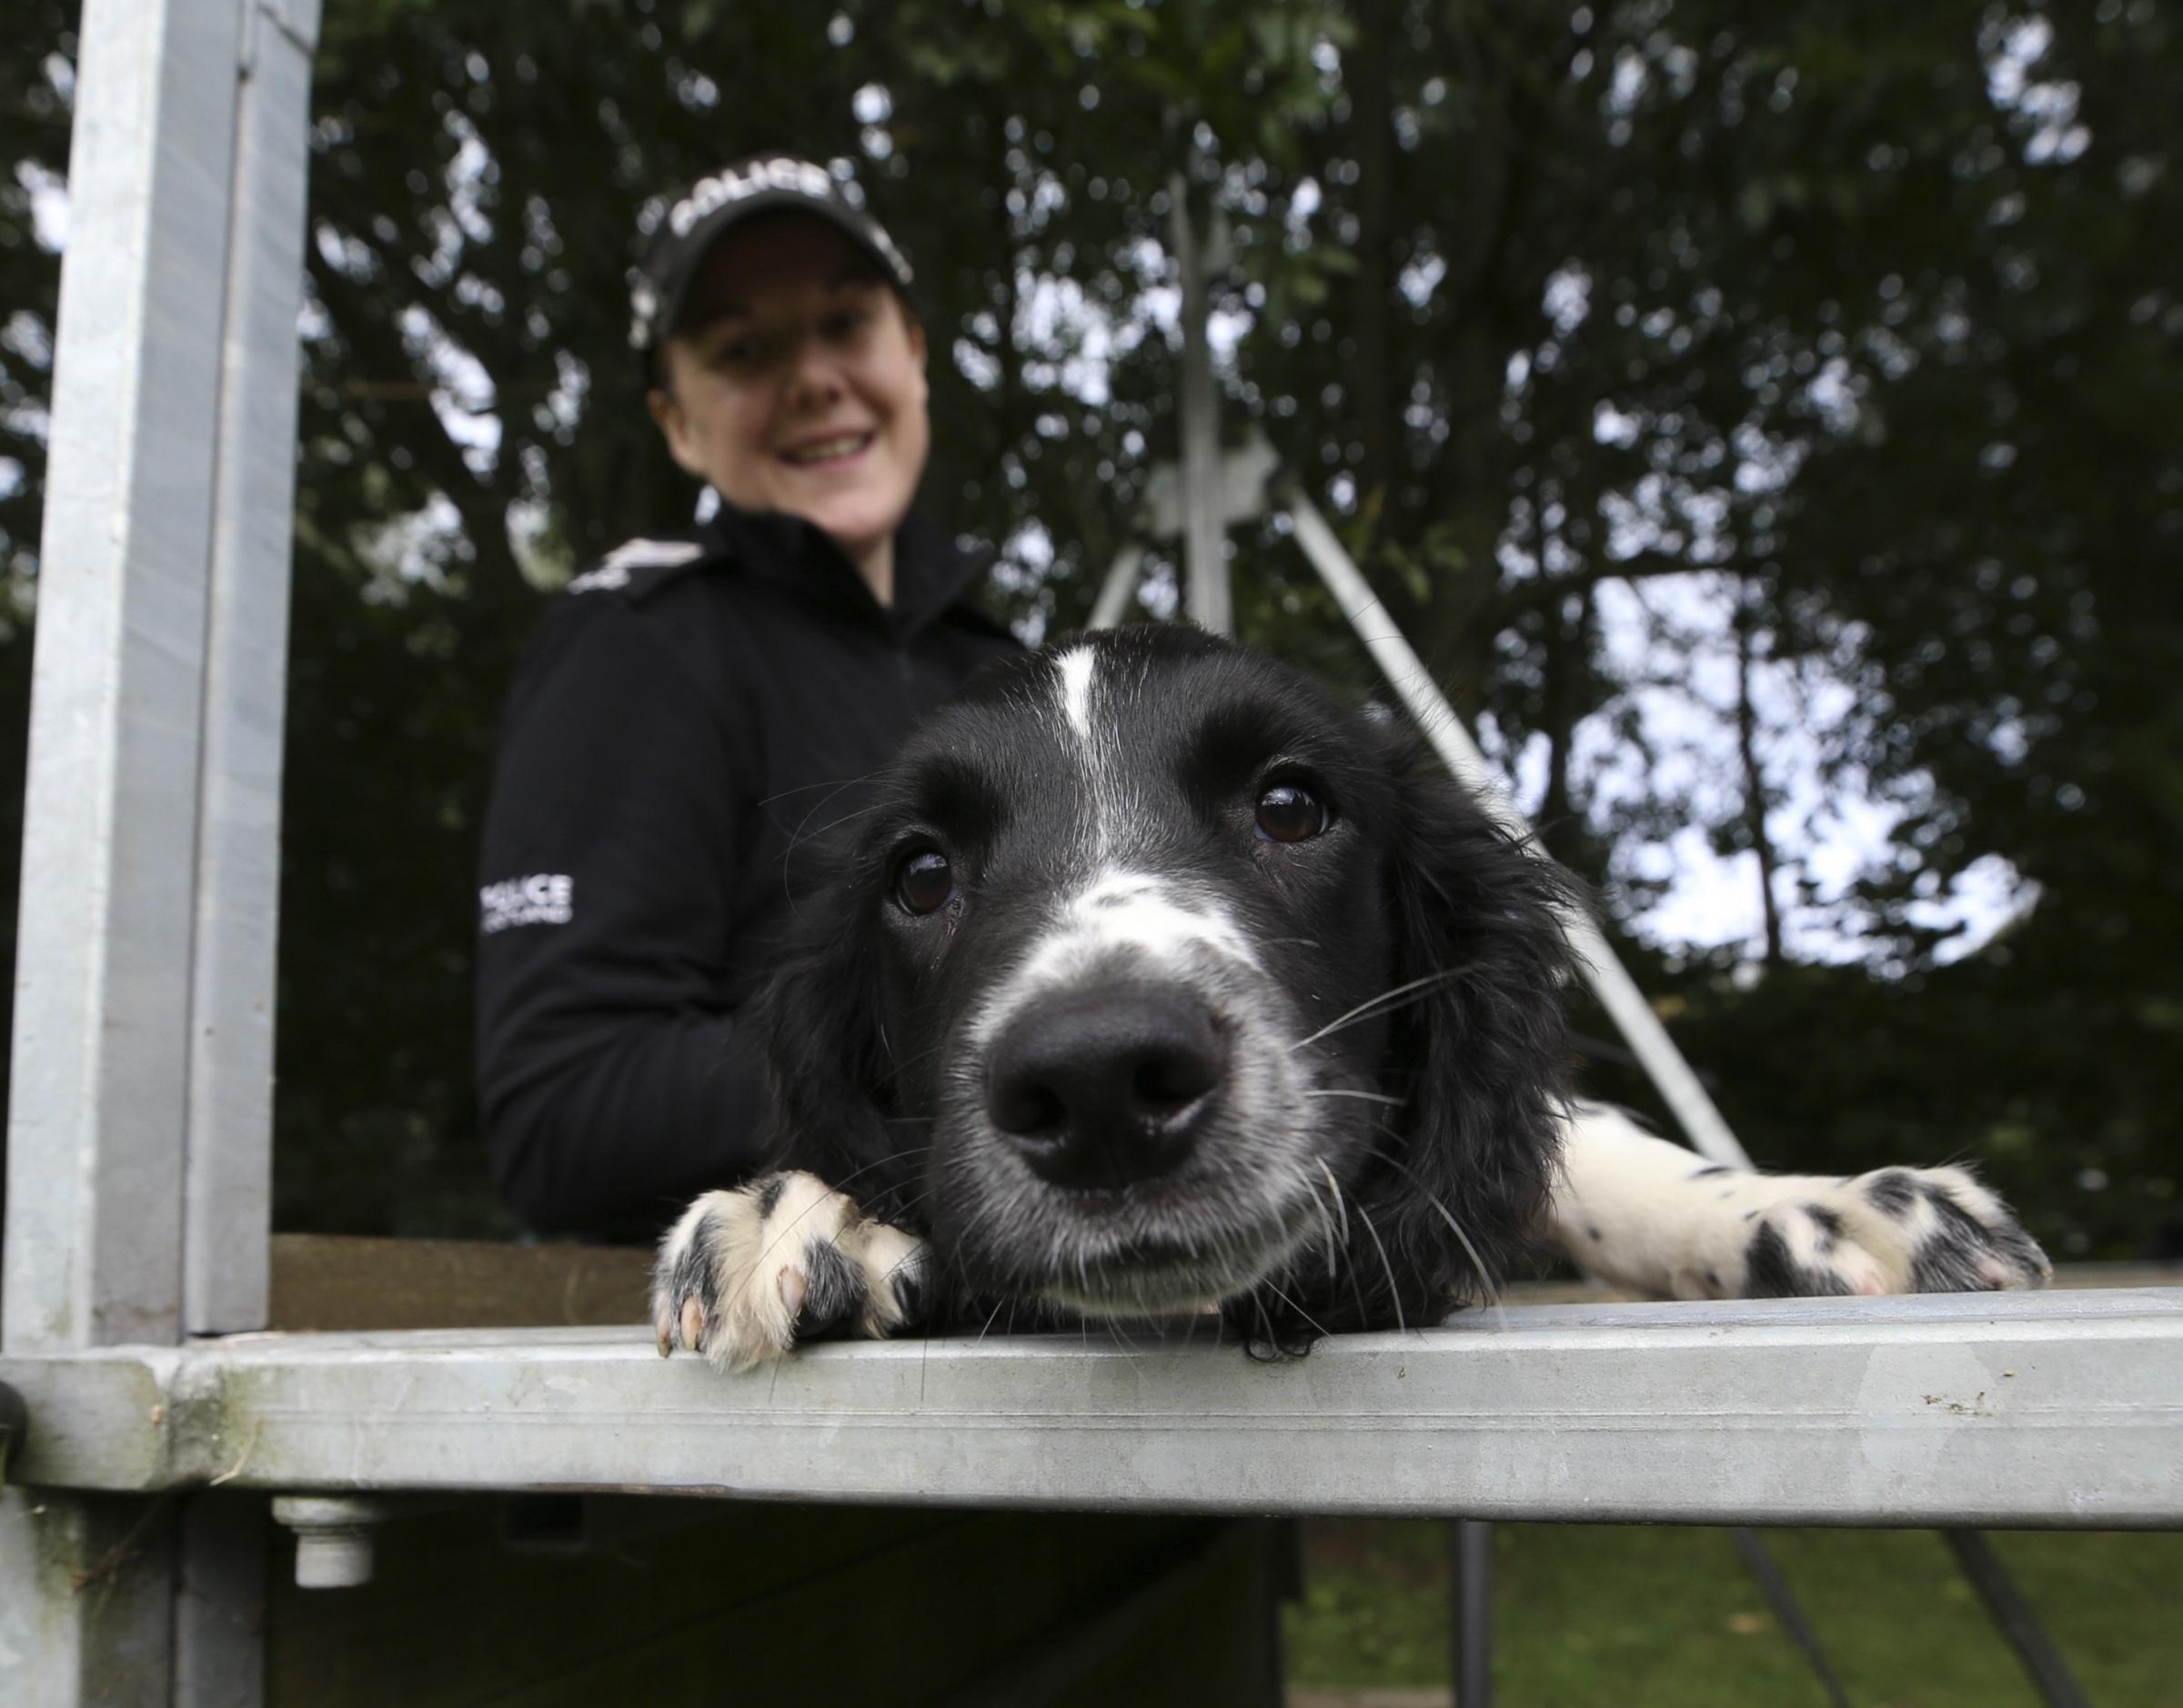 Glasgow's police dogs and handlers prepare ahead of COP26